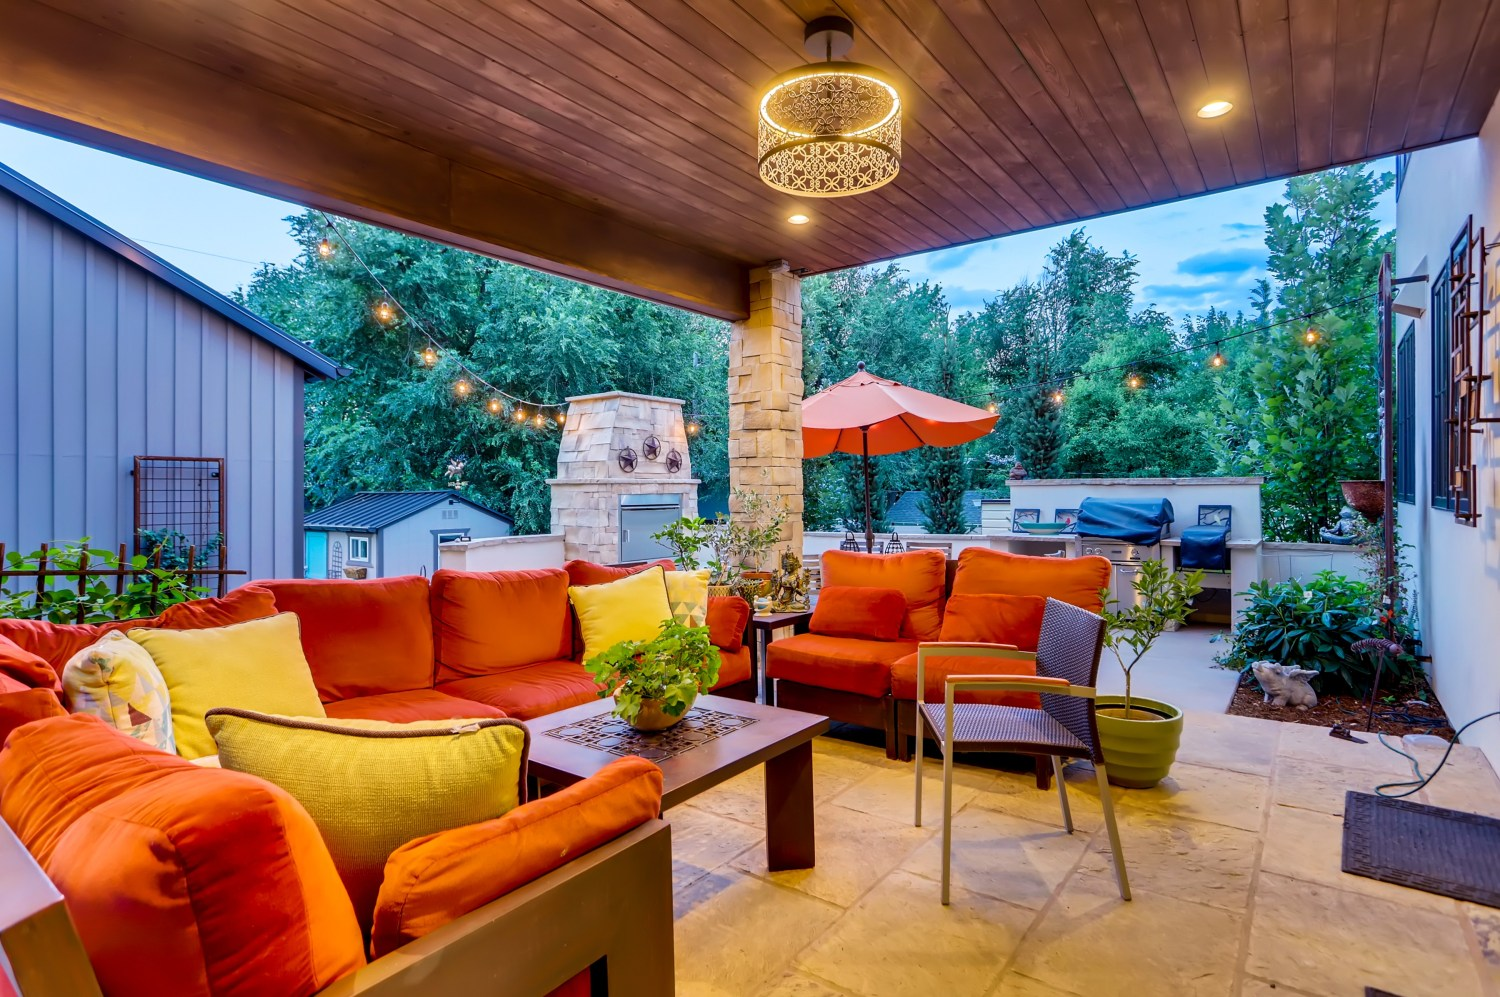 Covered rear patio with chandelier.